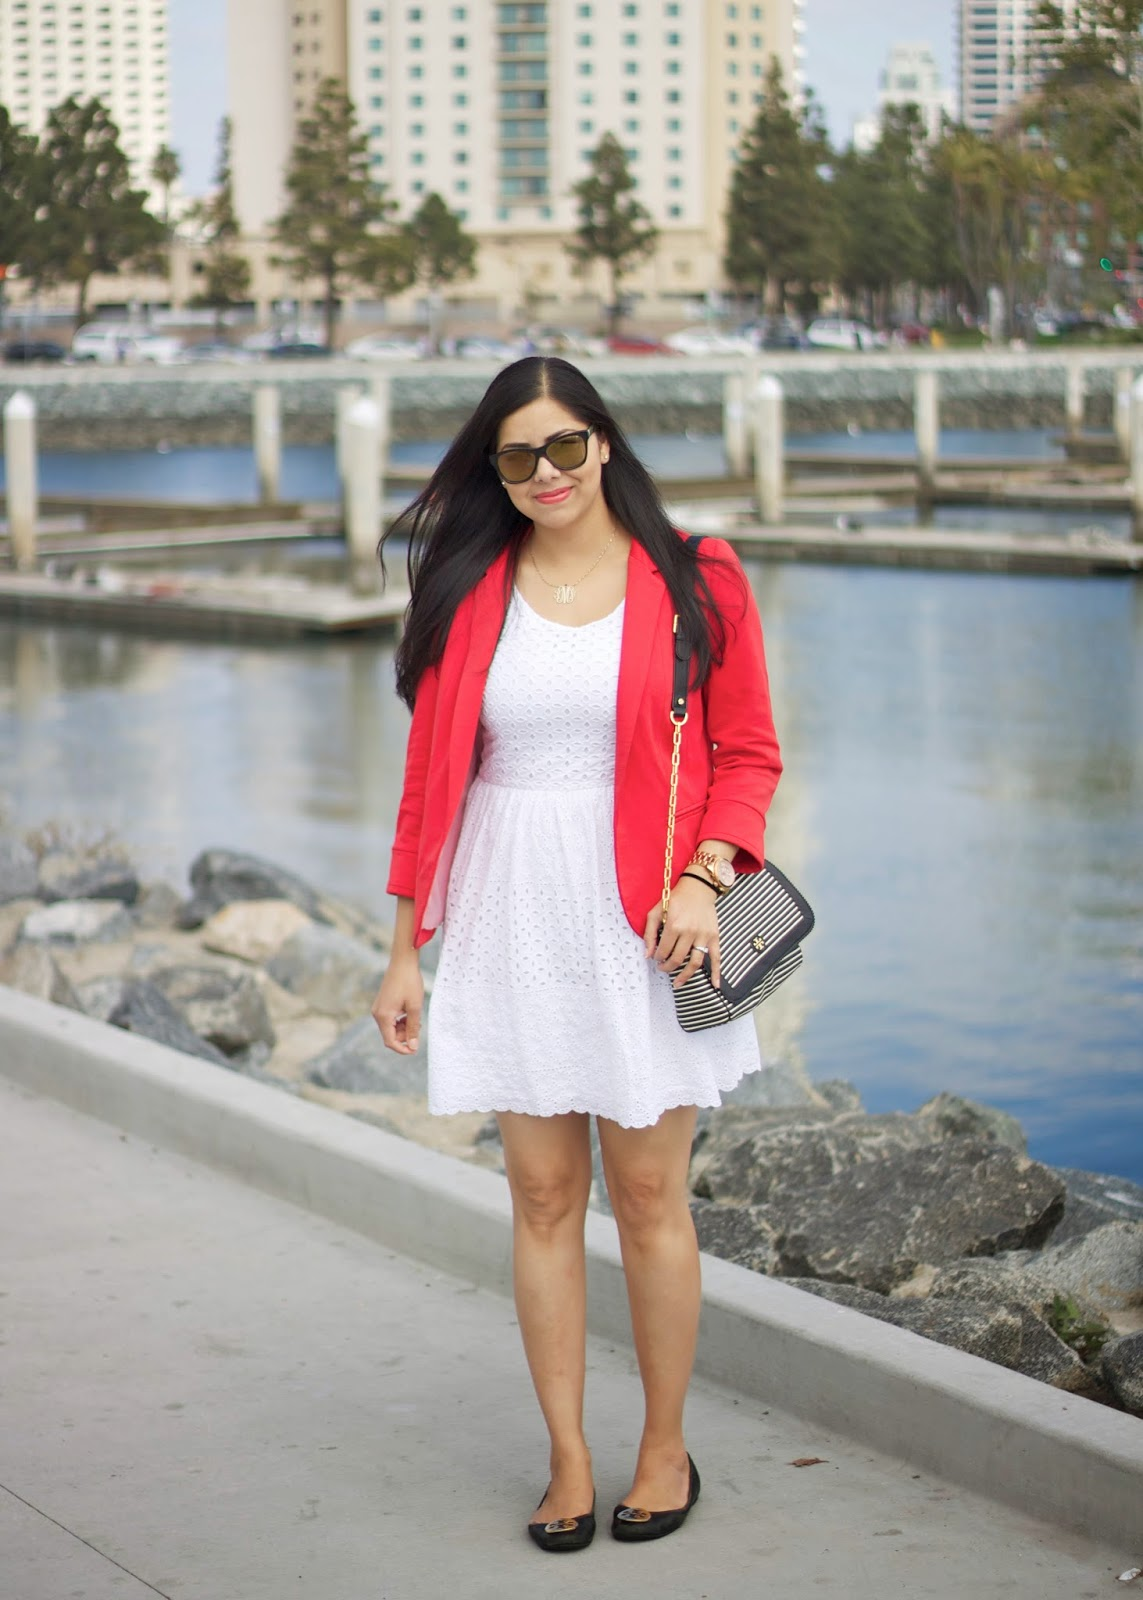 Casual San Diego Outfit, Casual Dress for San Diego, Little white eyelet dress